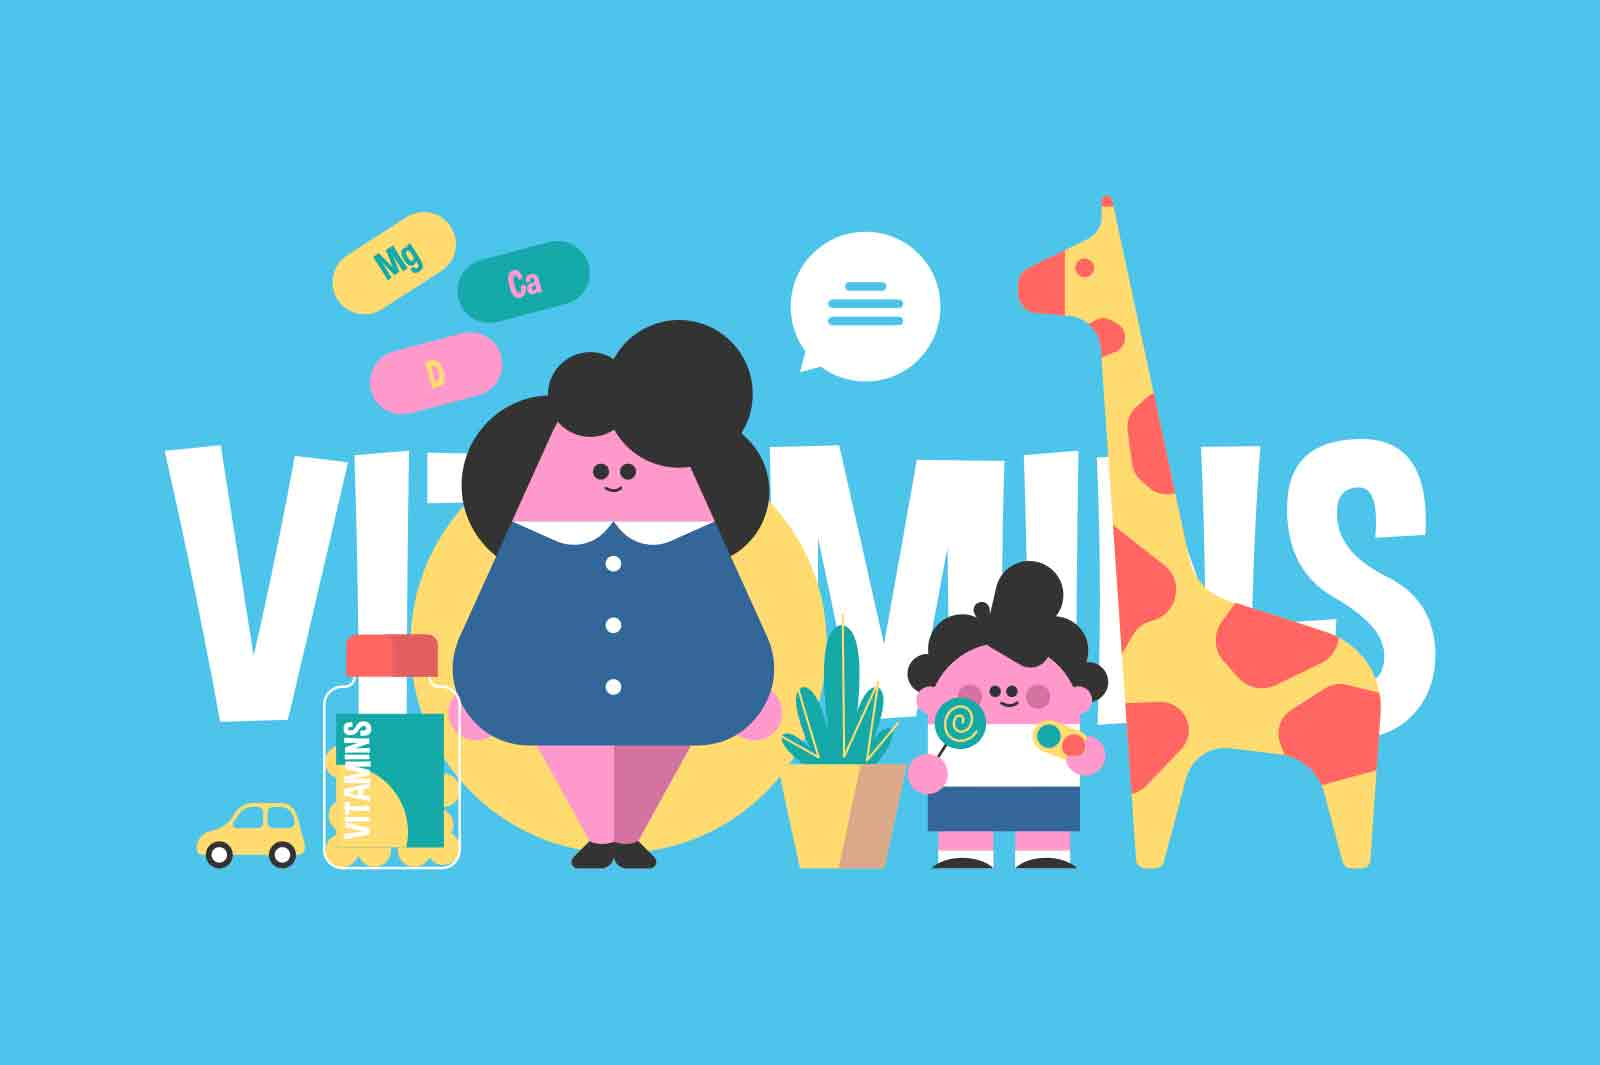 Benefit of vitamins for children vector illustration. Mother with kid, healthy eating flat style. Nutrition, supplements, growth concept